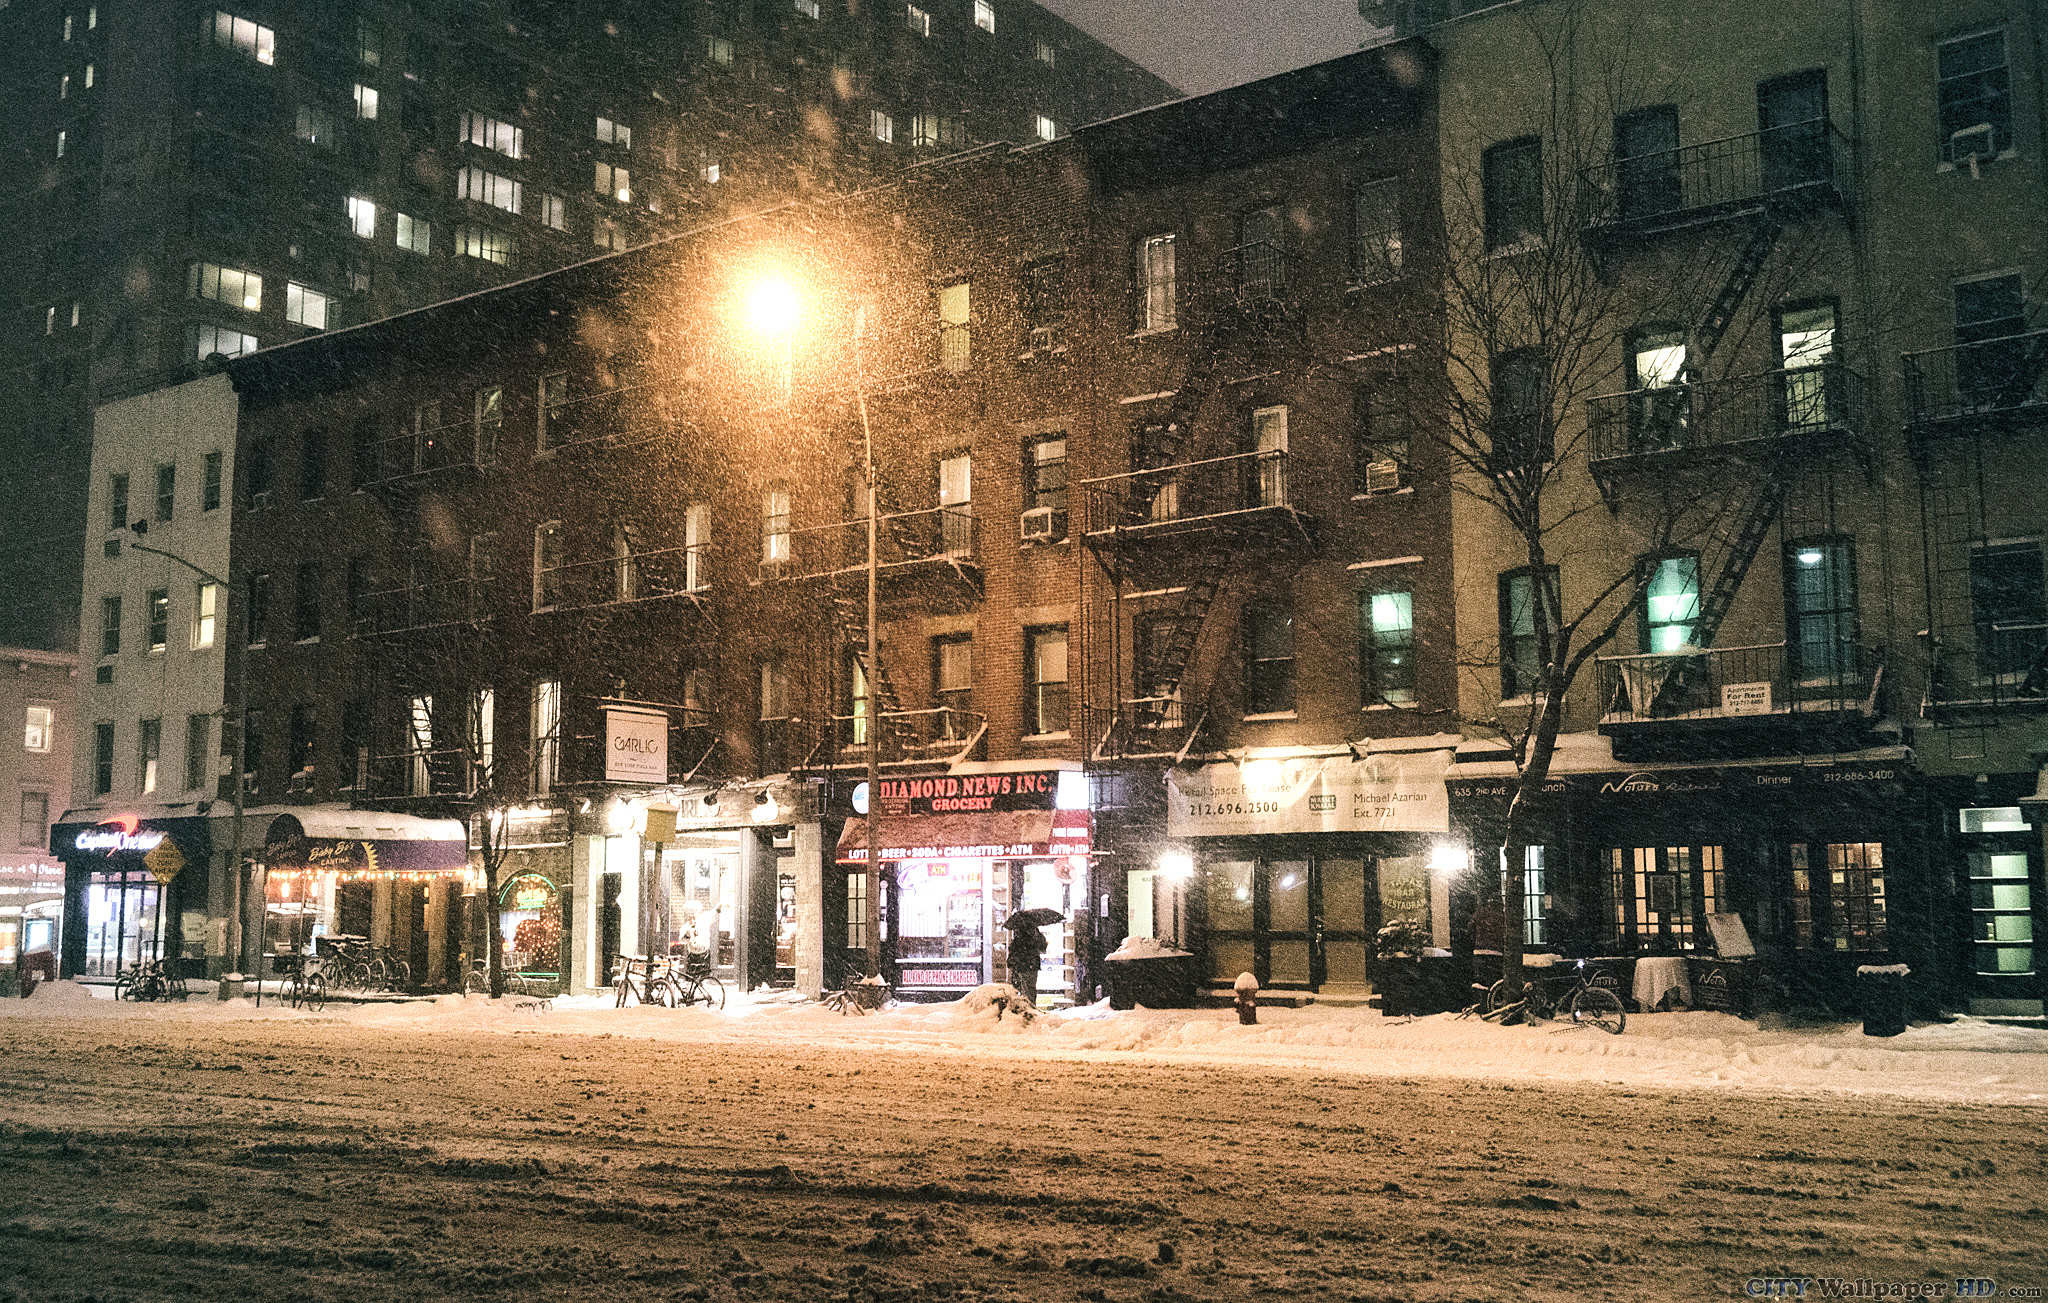 New York winter wallpaper. Download